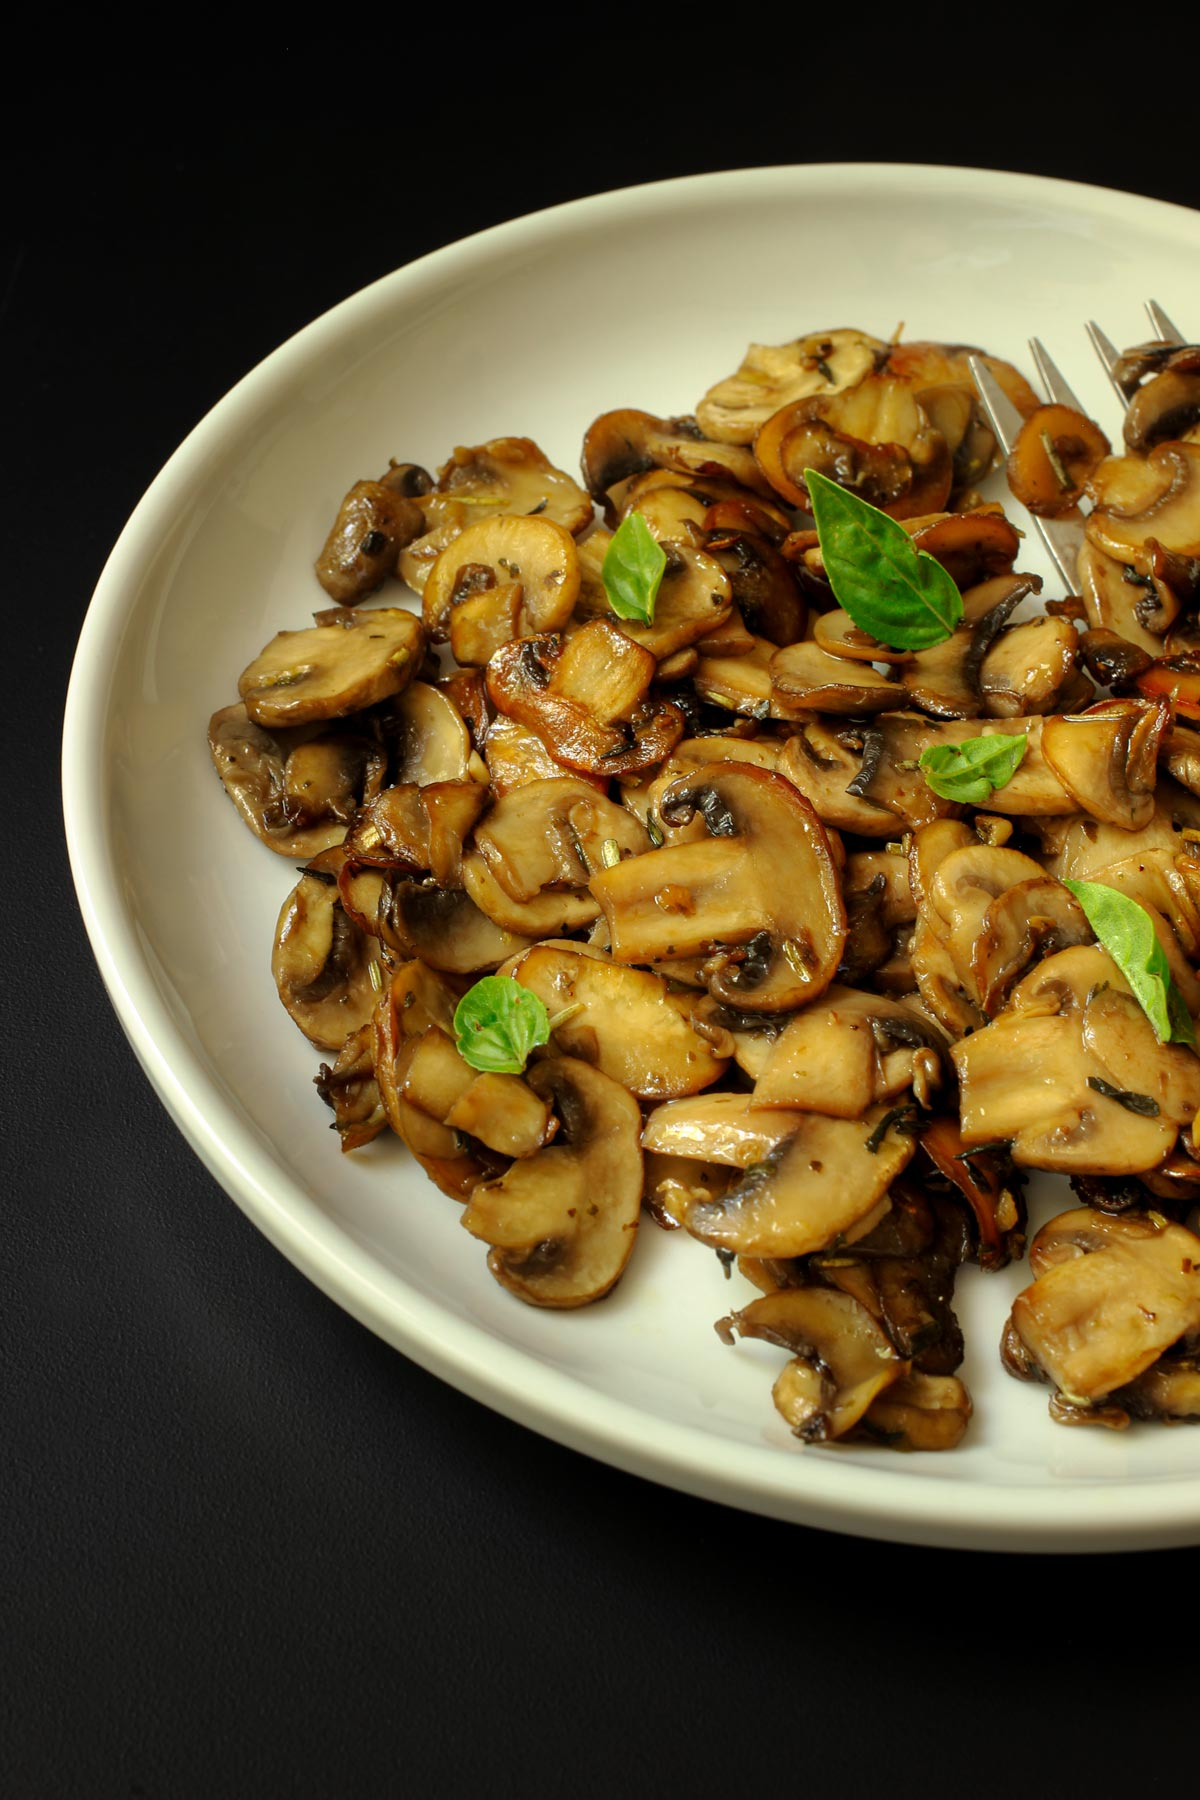 sauteed mushrooms with basil leaves on white plate.